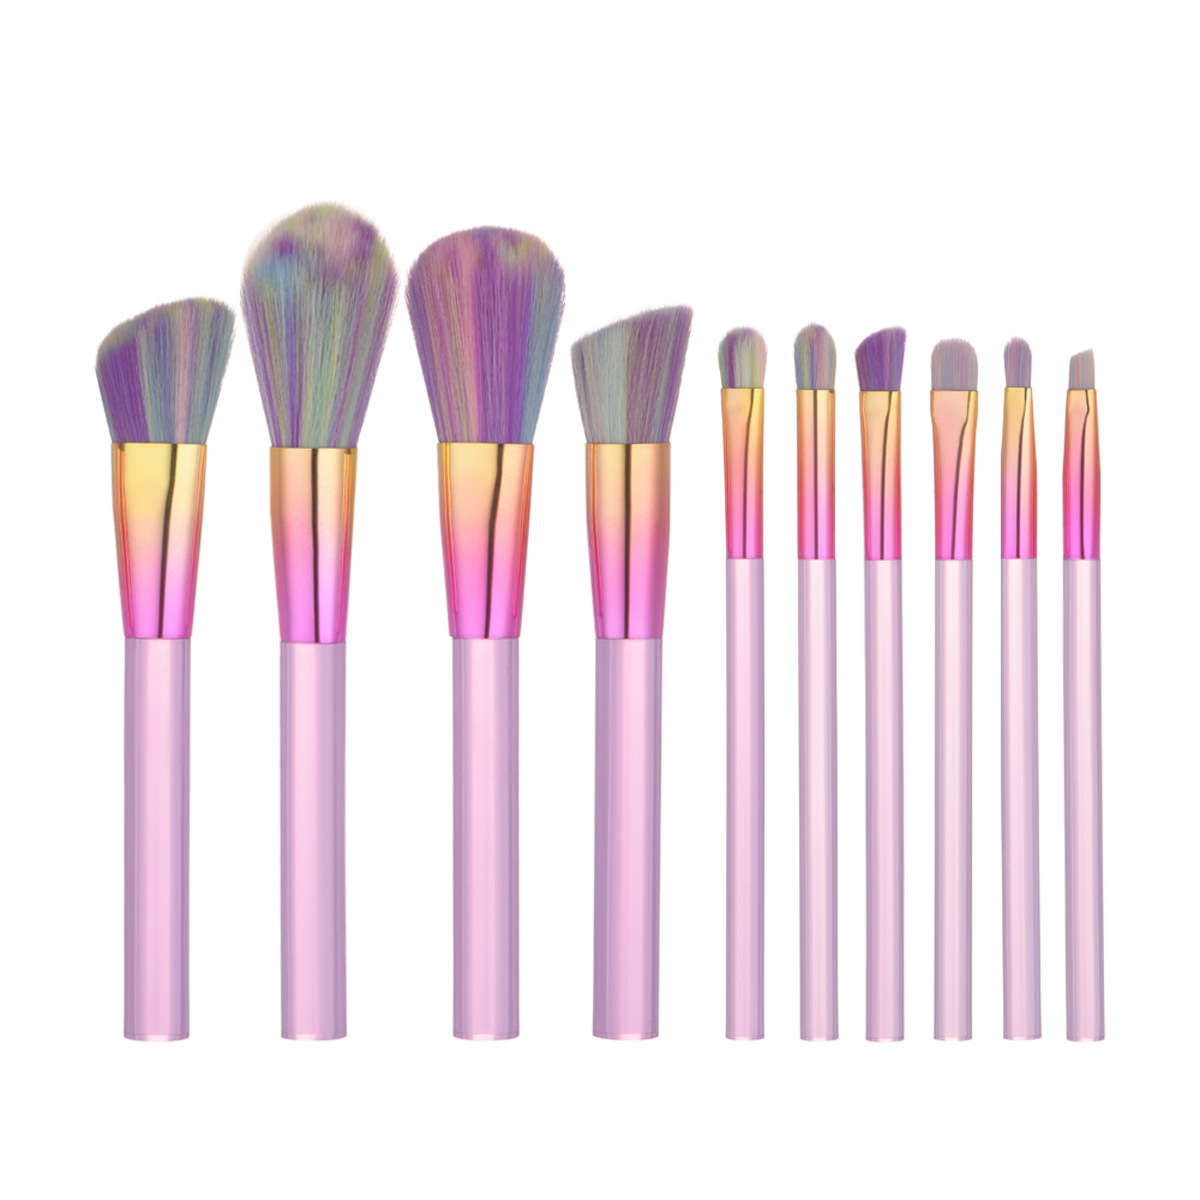 10 pcs makeup brush set MB074